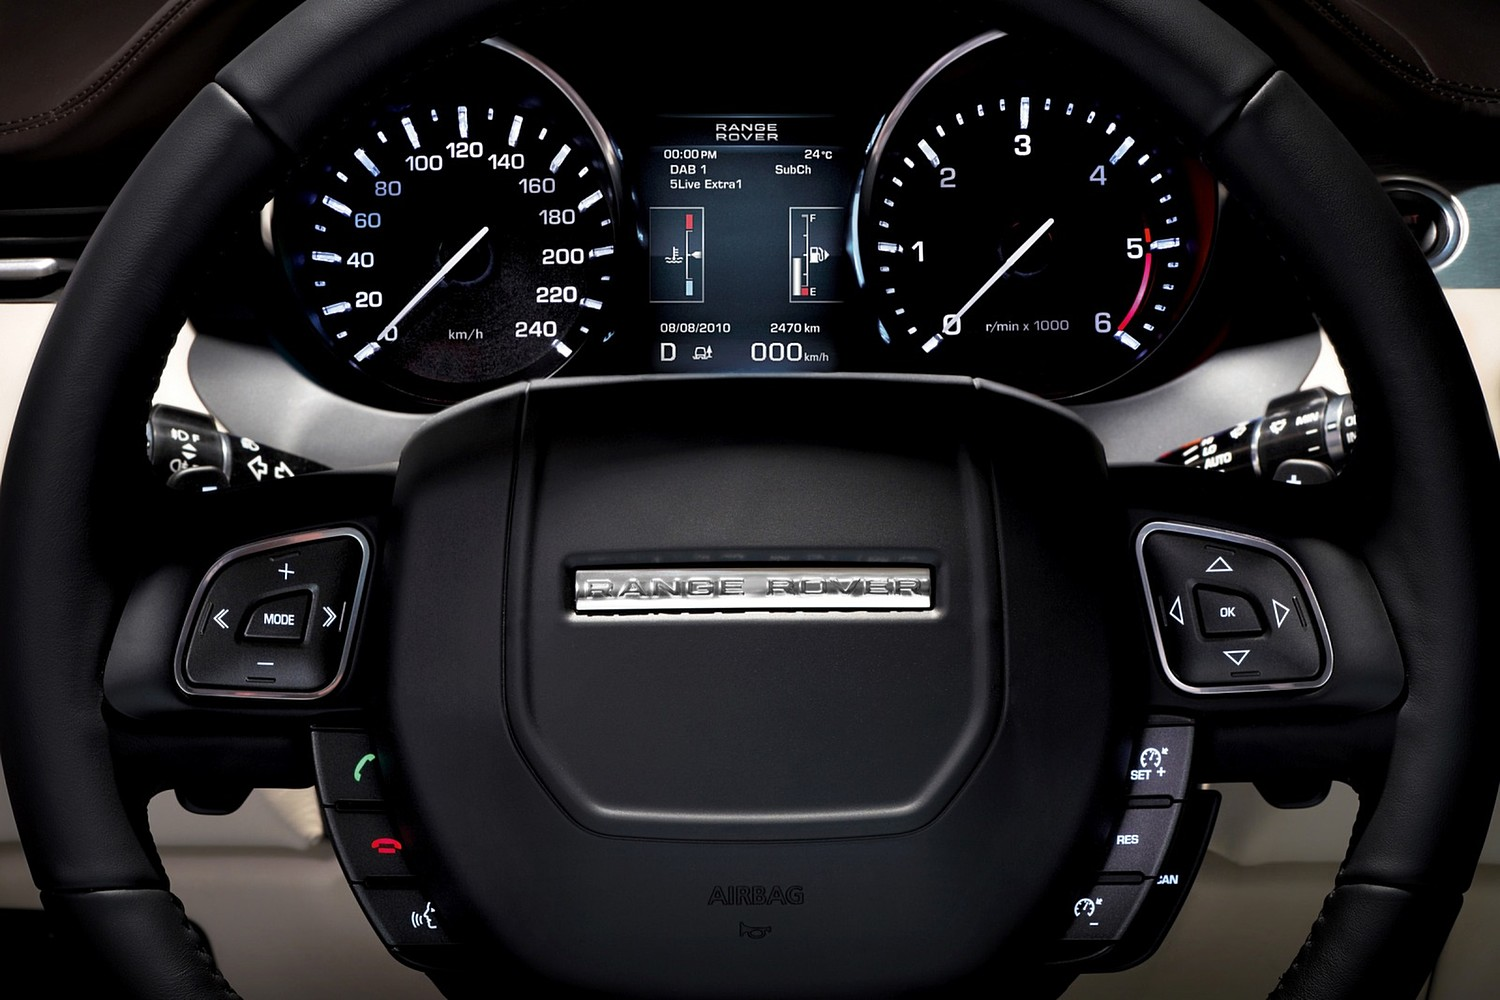 Land Rover Range Rover Evoque Pure Plus 2dr SUV Steering Wheel Detail (2013 model year shown)